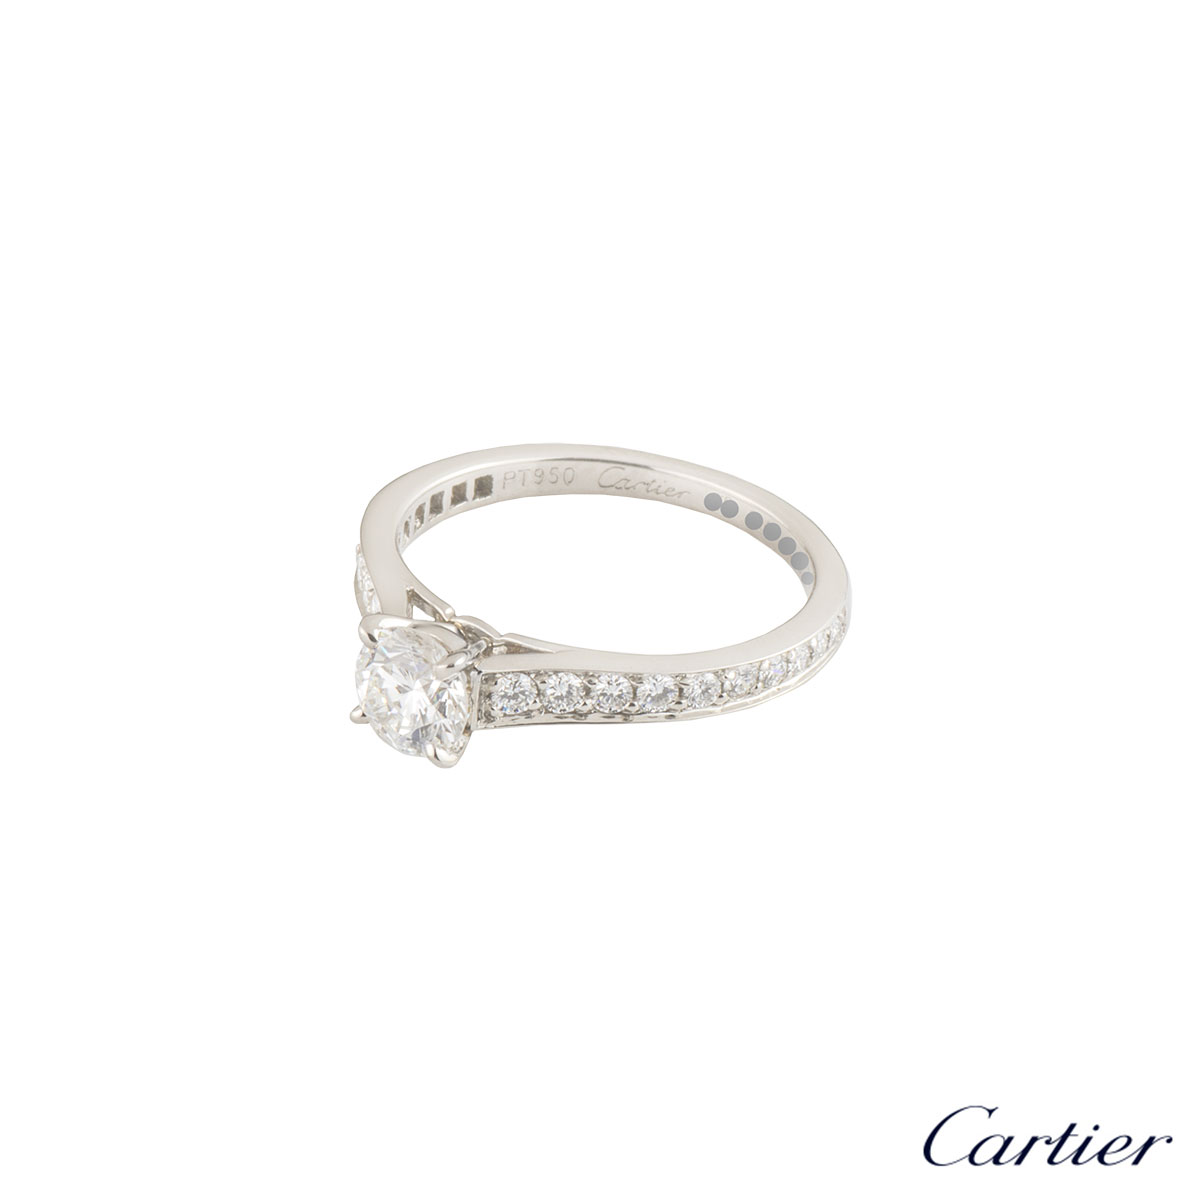 Cartier 1895 Solitaire Ring